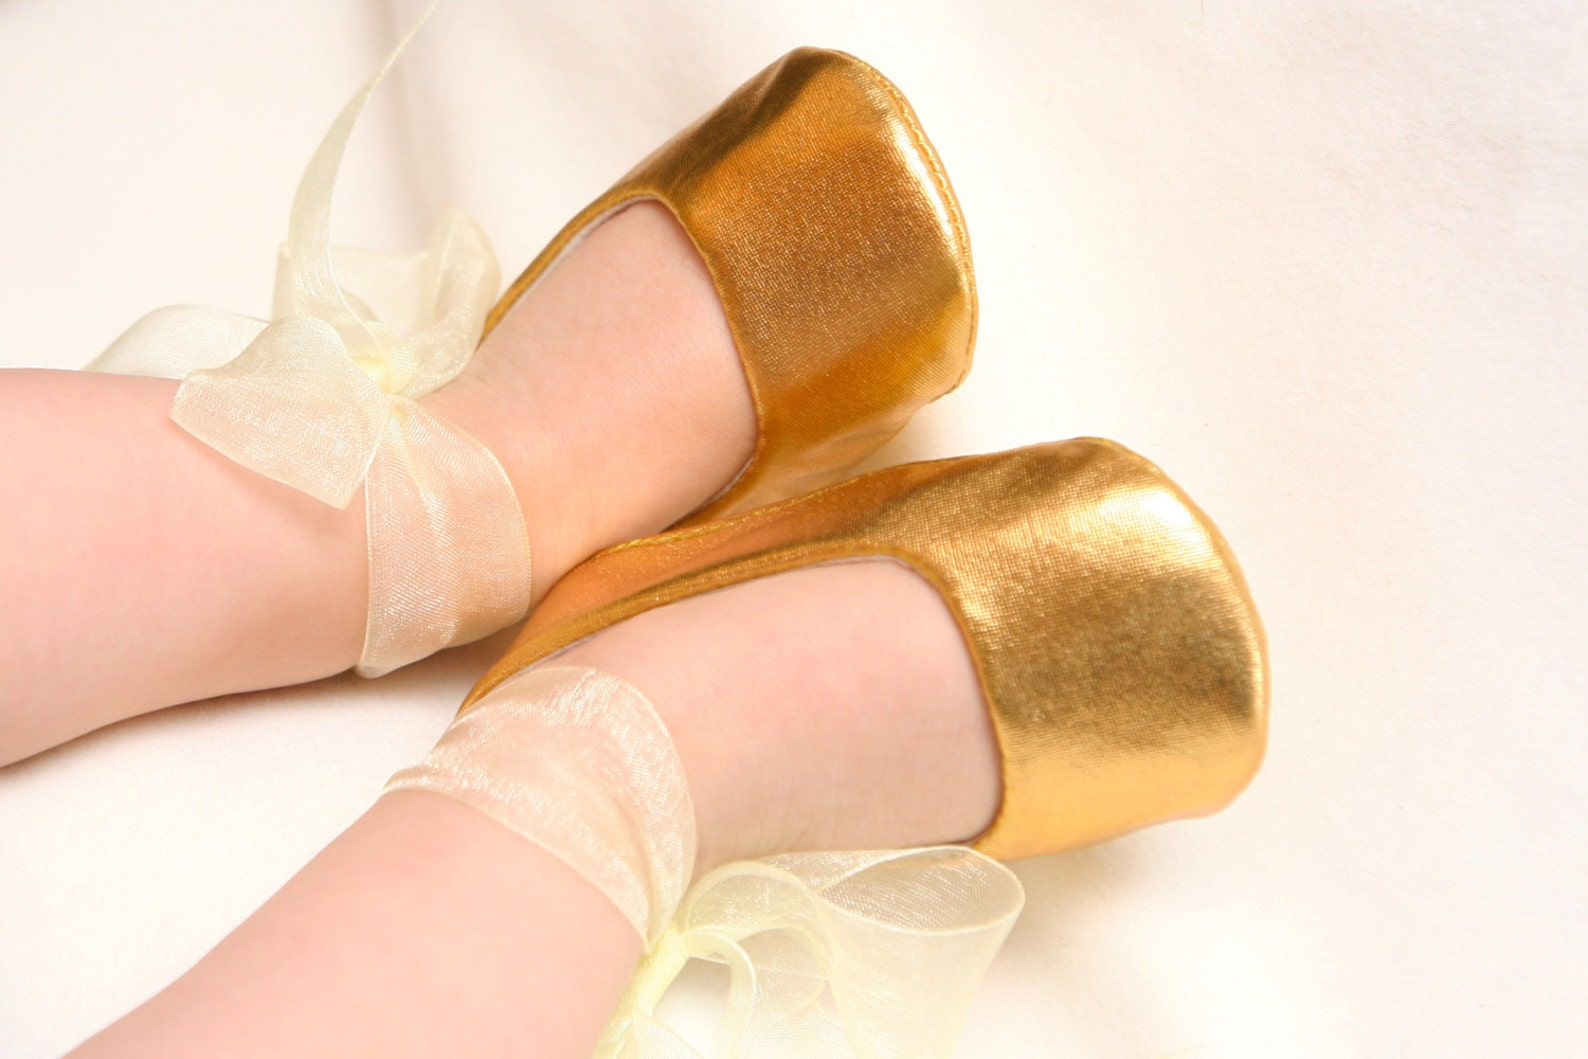 gold baby shoes, silver baby shoes, baby ballerina shoes, baby ballet shoes, gold baby outfit, infant shoes, gold baby shower gi